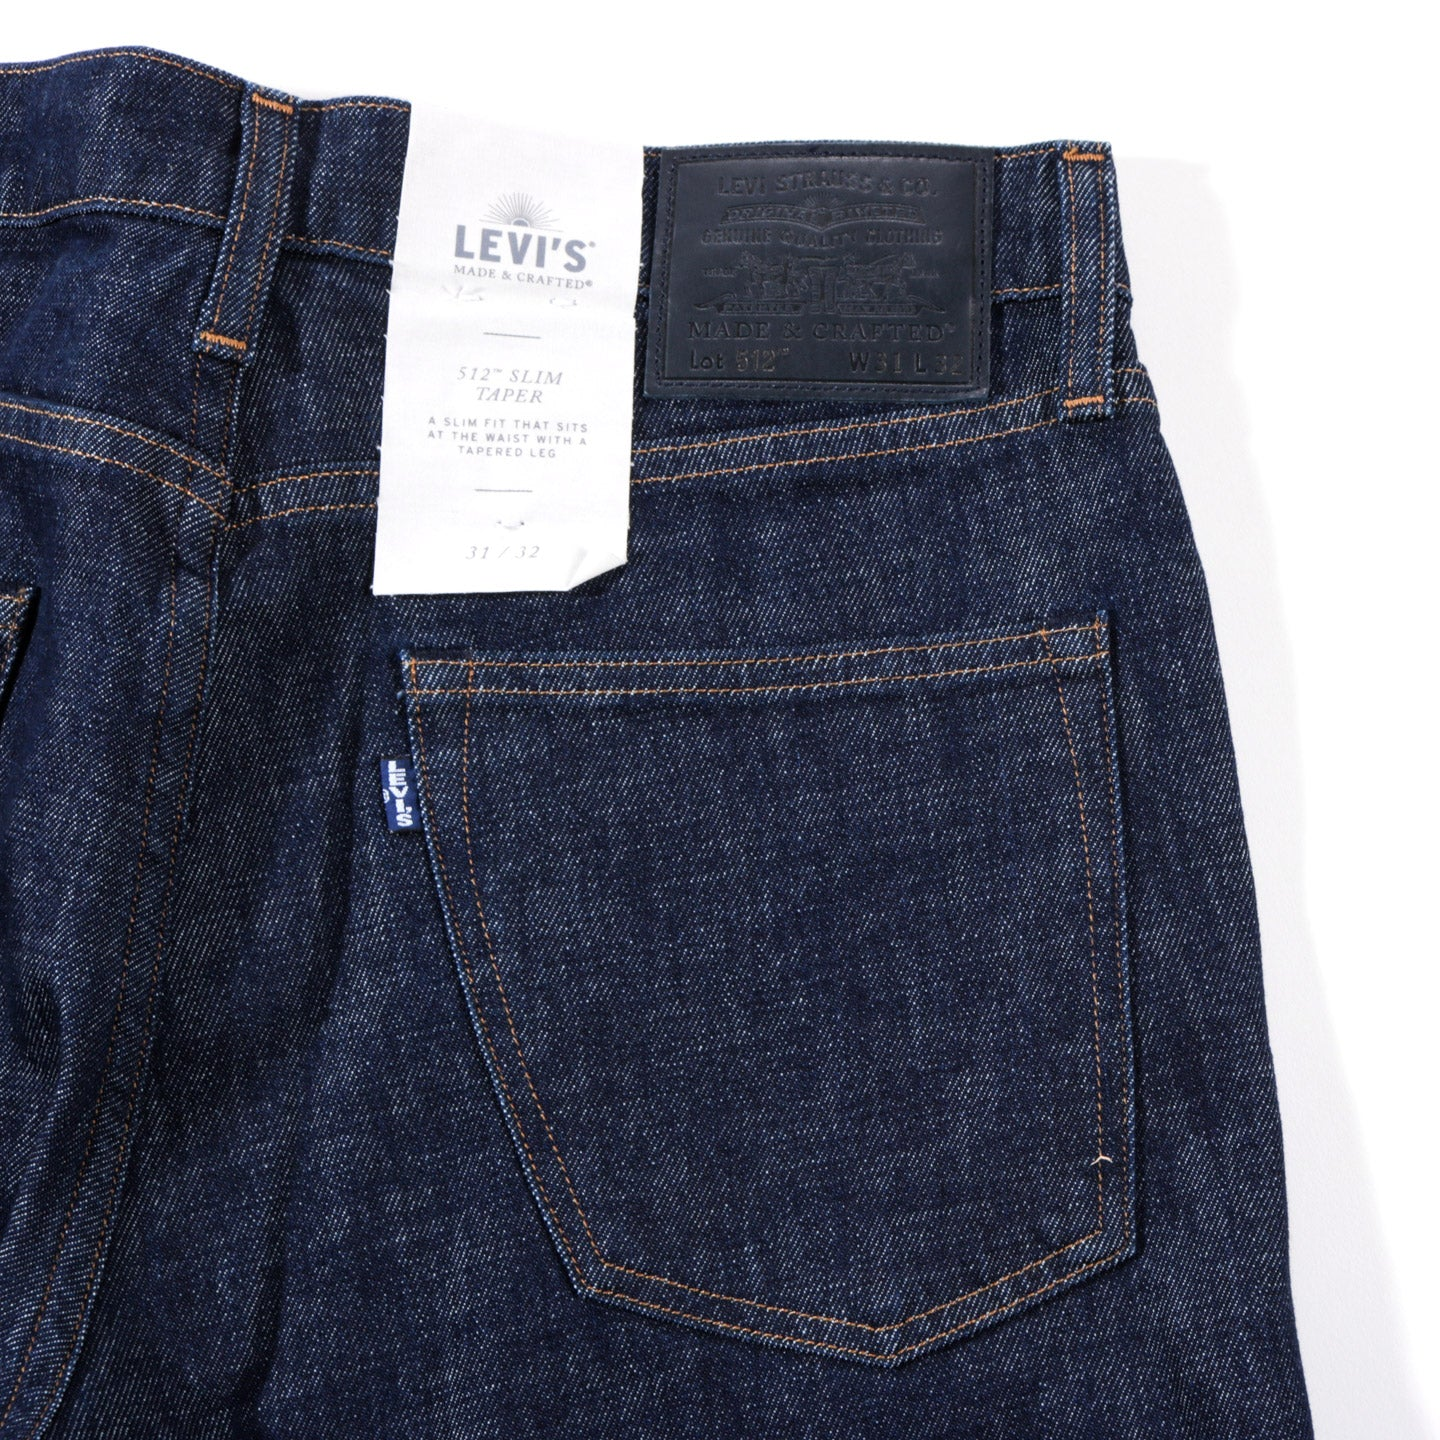 LEVI'S MADE & CRAFTED 512 INDIGO RESIN